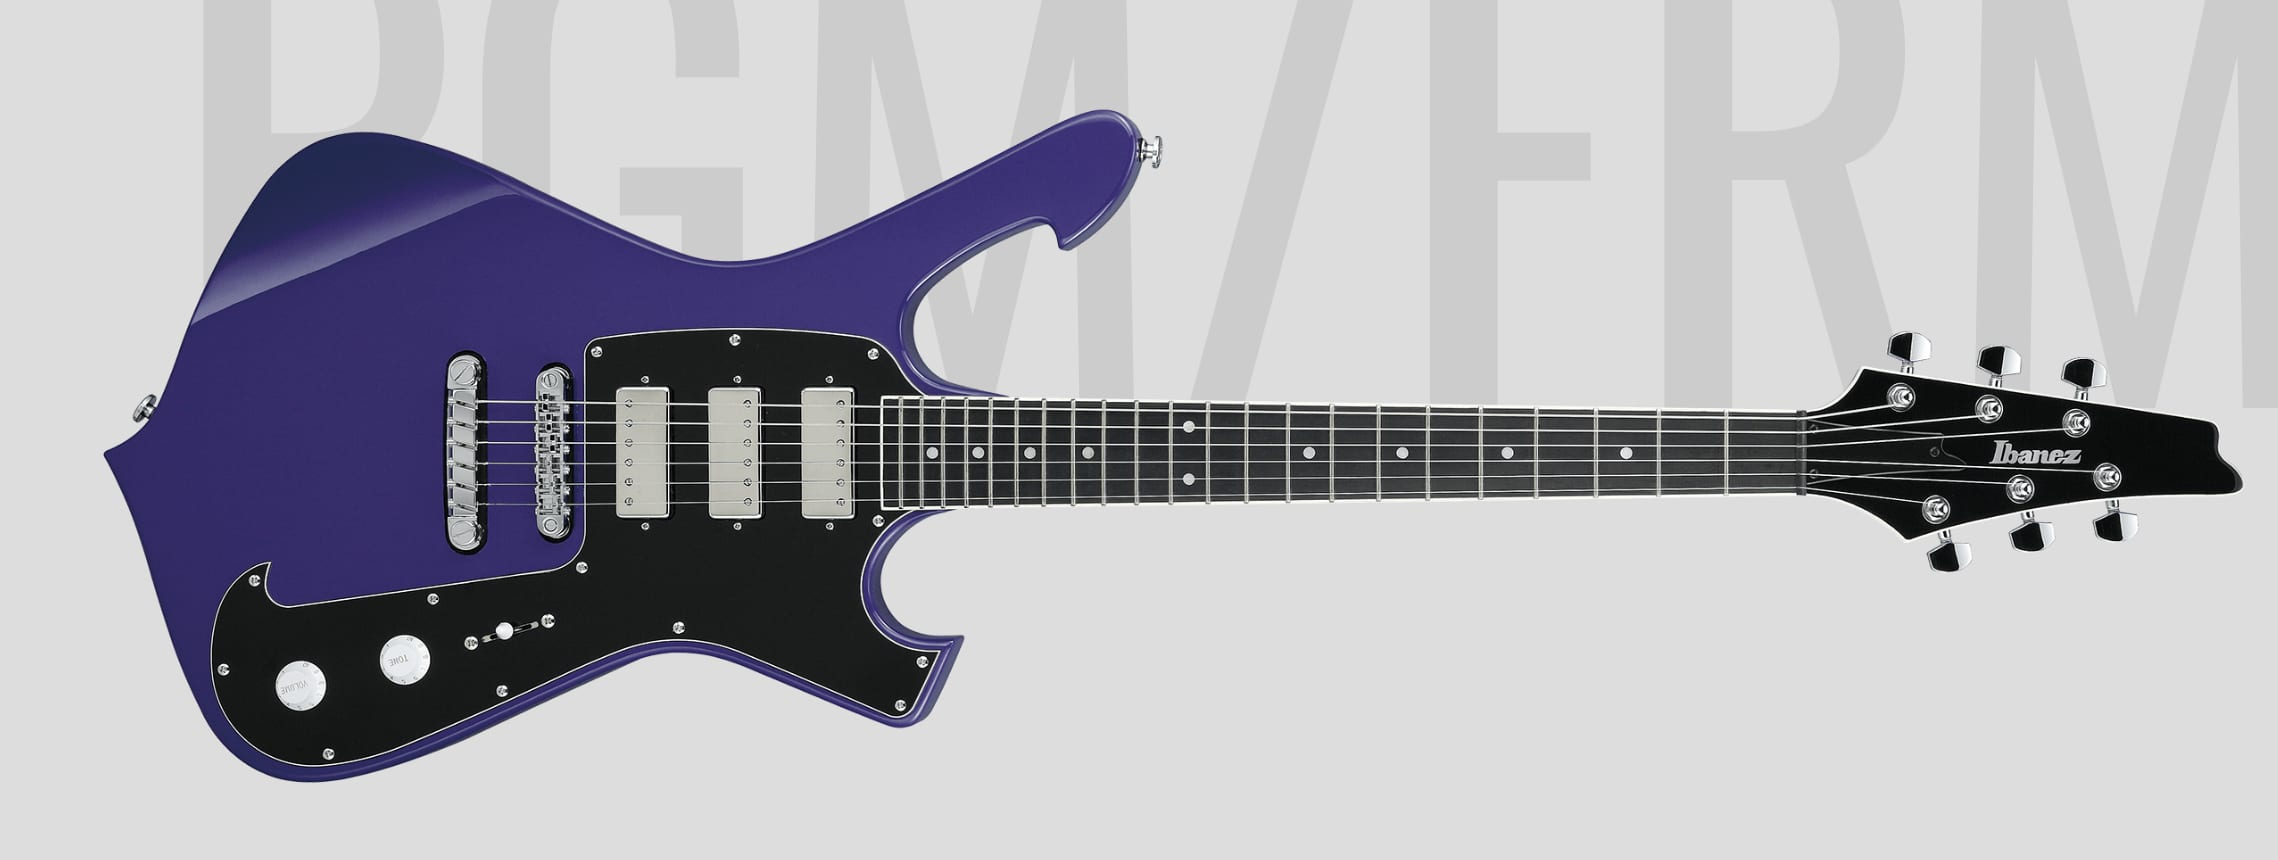 Ibanez Paul Gilbert PGM FRM300 a luscious purple shredder with style